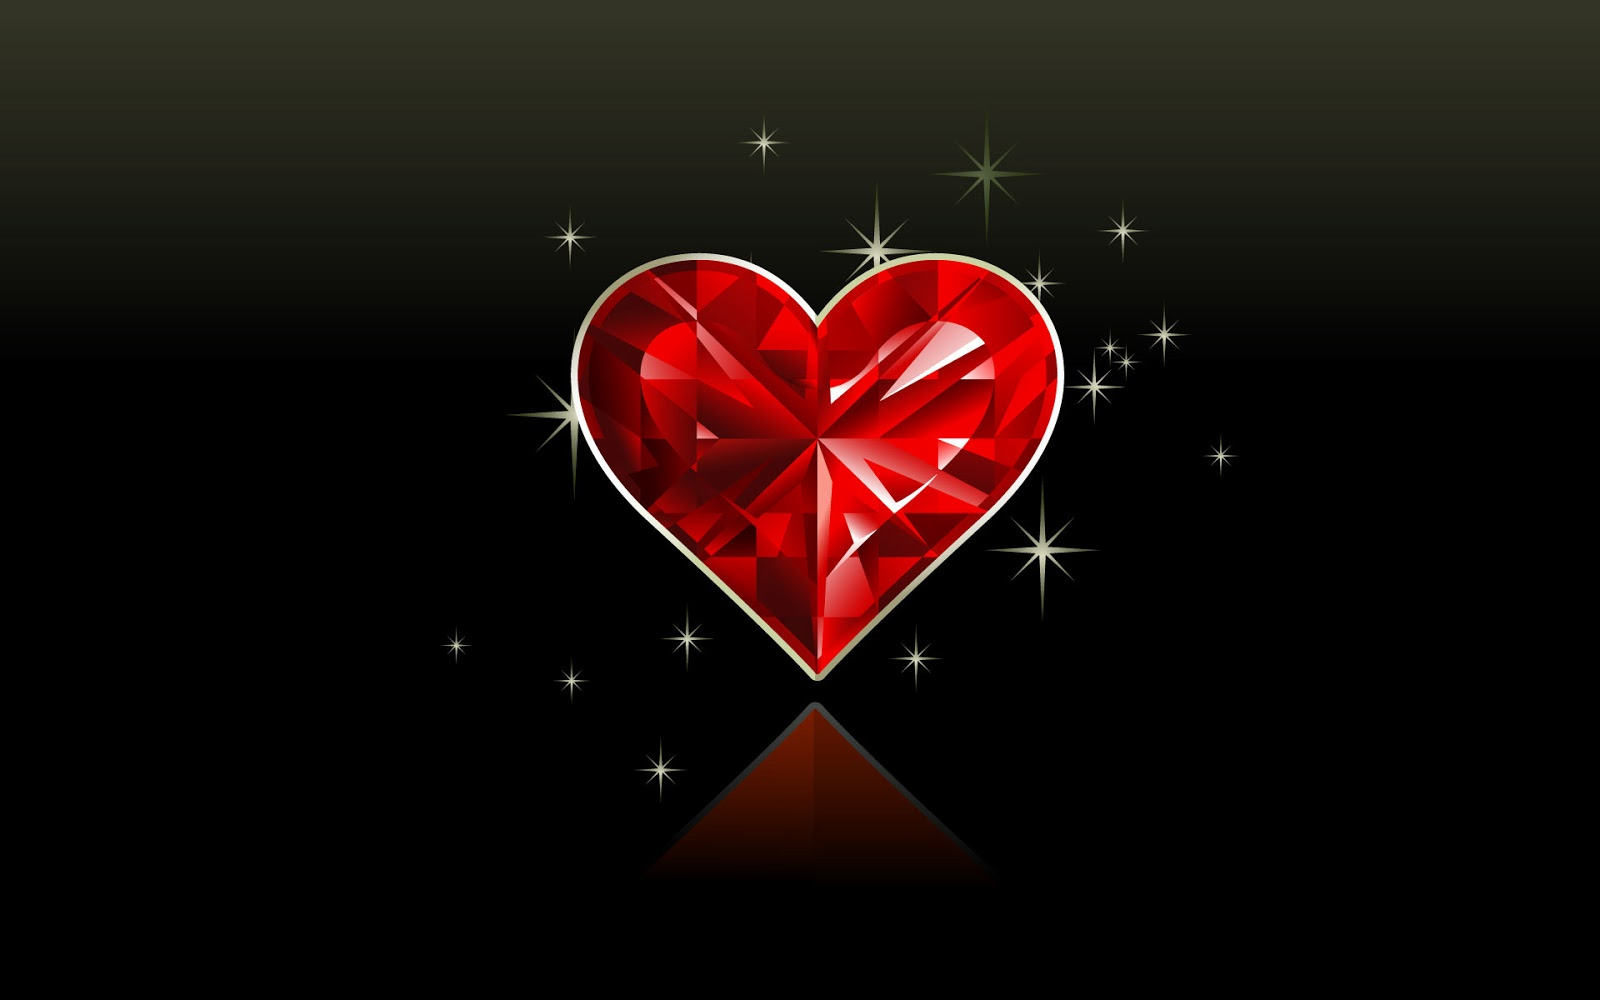 Love Wallpaper With Images : Heart love background, wallpaper hearts love Free Stock Photos Web